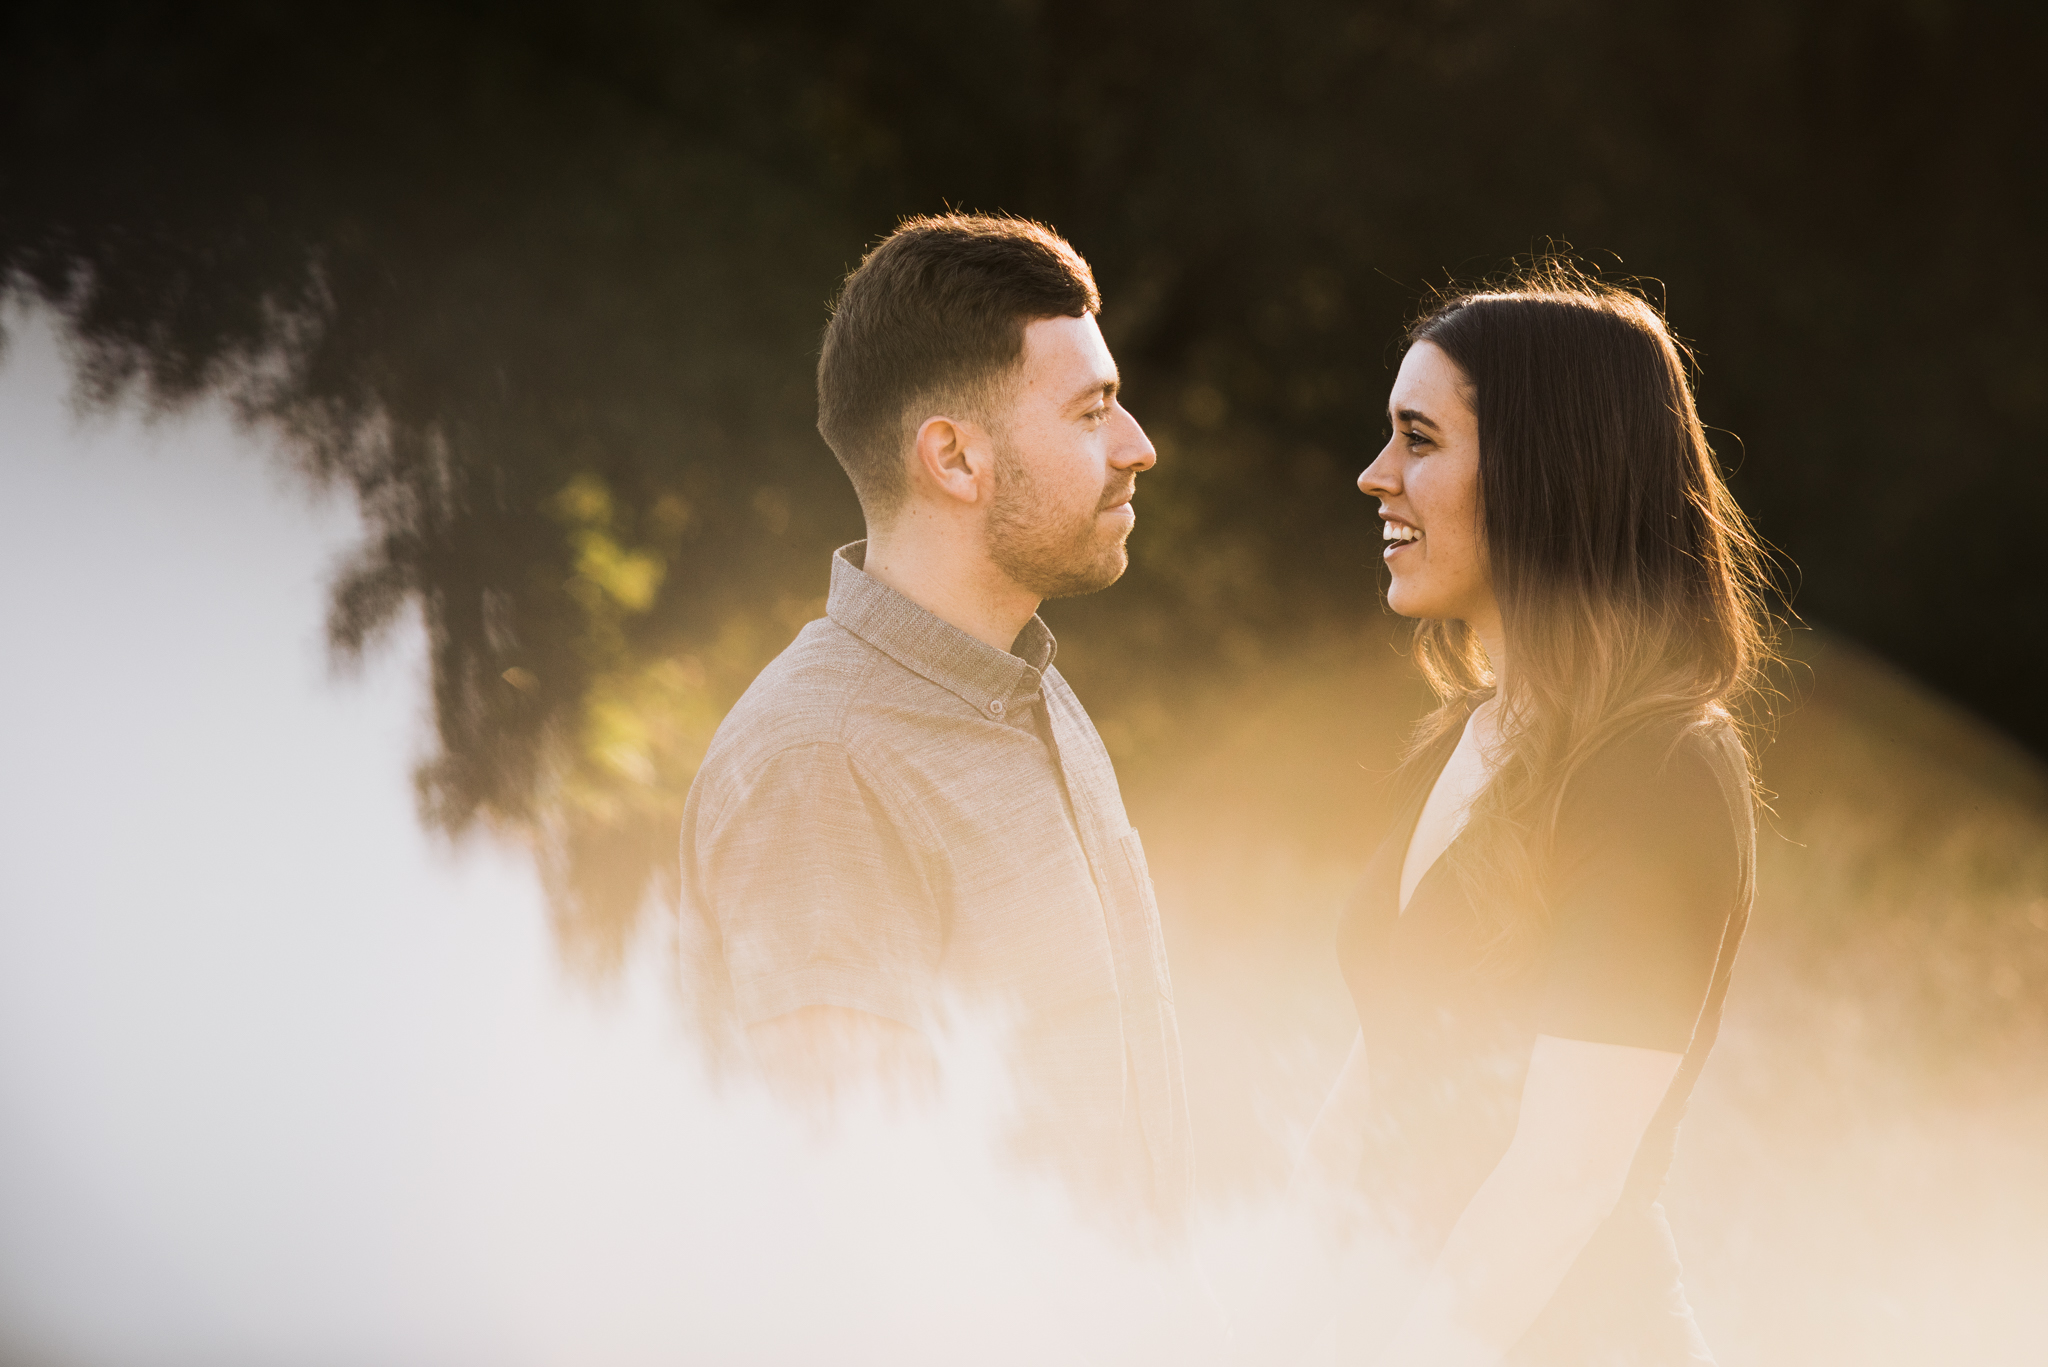 ©Isaiah-&-Taylor-Photography---Malibu-Field-Engagement,-Southern-California-Wedding-Photographer-001.jpg